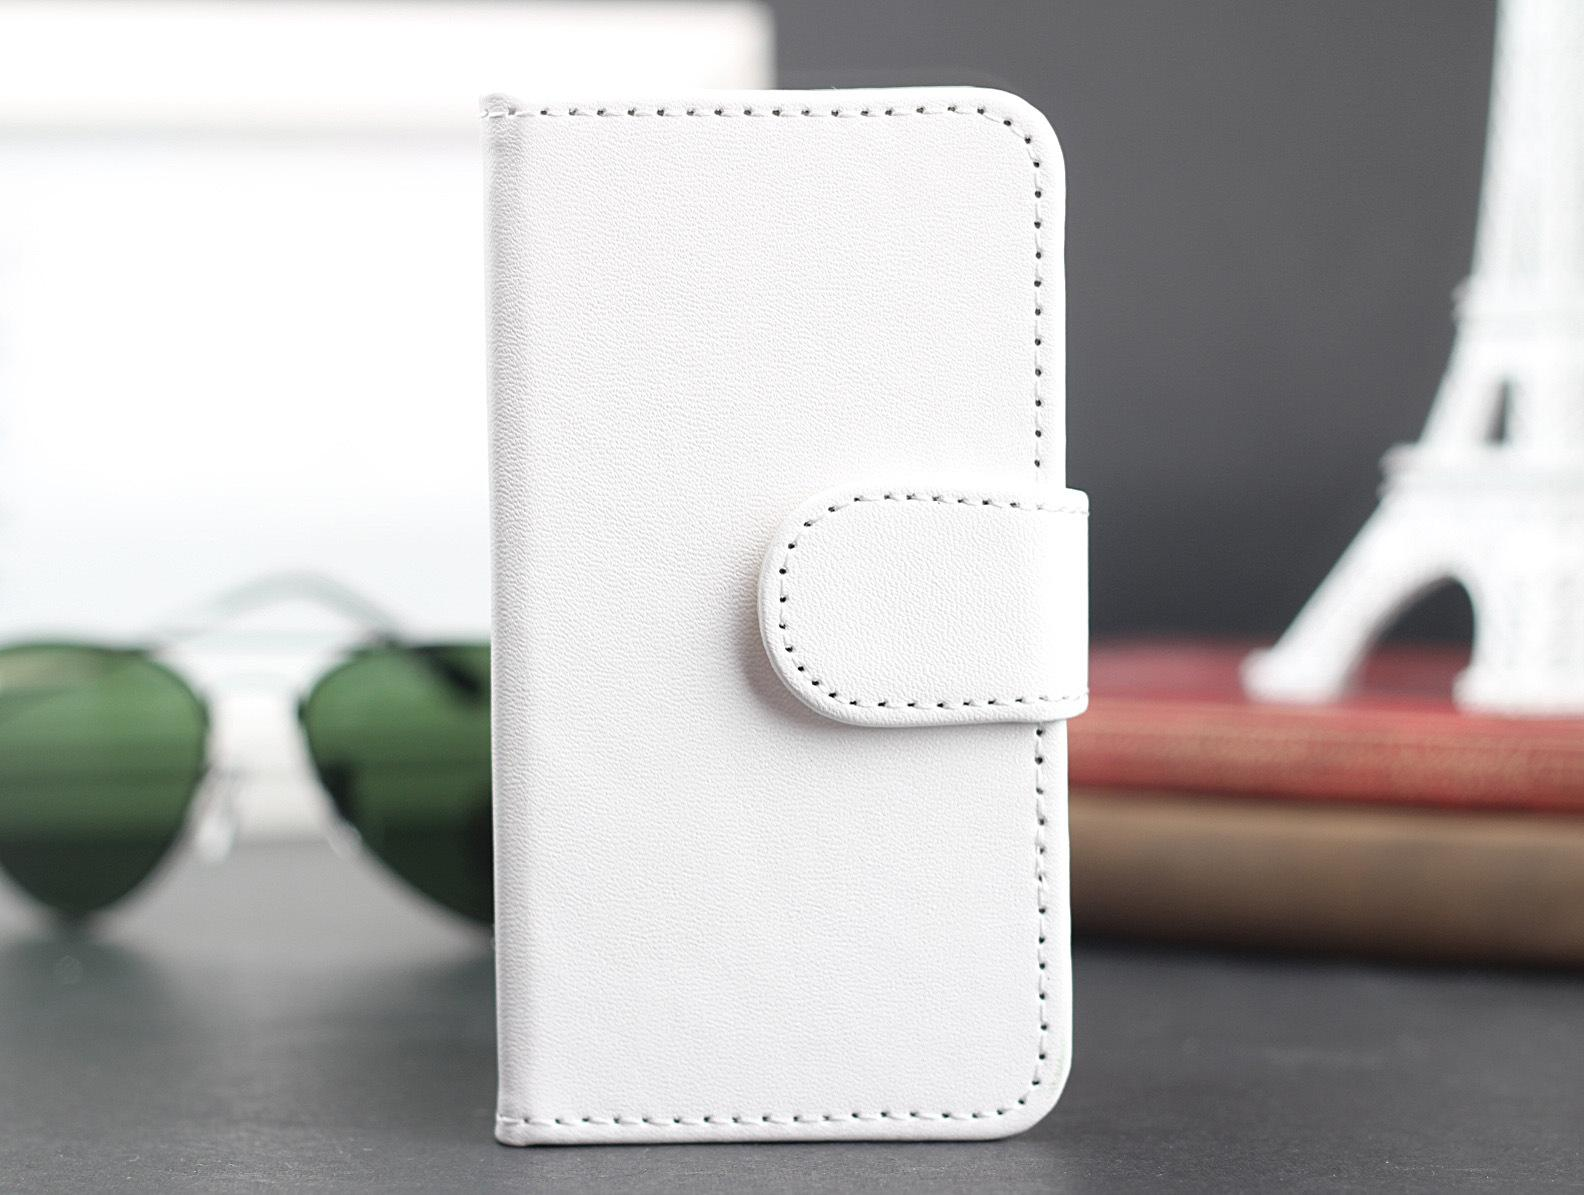 reputable site c310d 09120 For iPhone Case Leather Wallet + hard plastic Cover For iPhone 5 5s 6 6s SE  Luxury Flip Cover For Apple iPhone , with card slot function